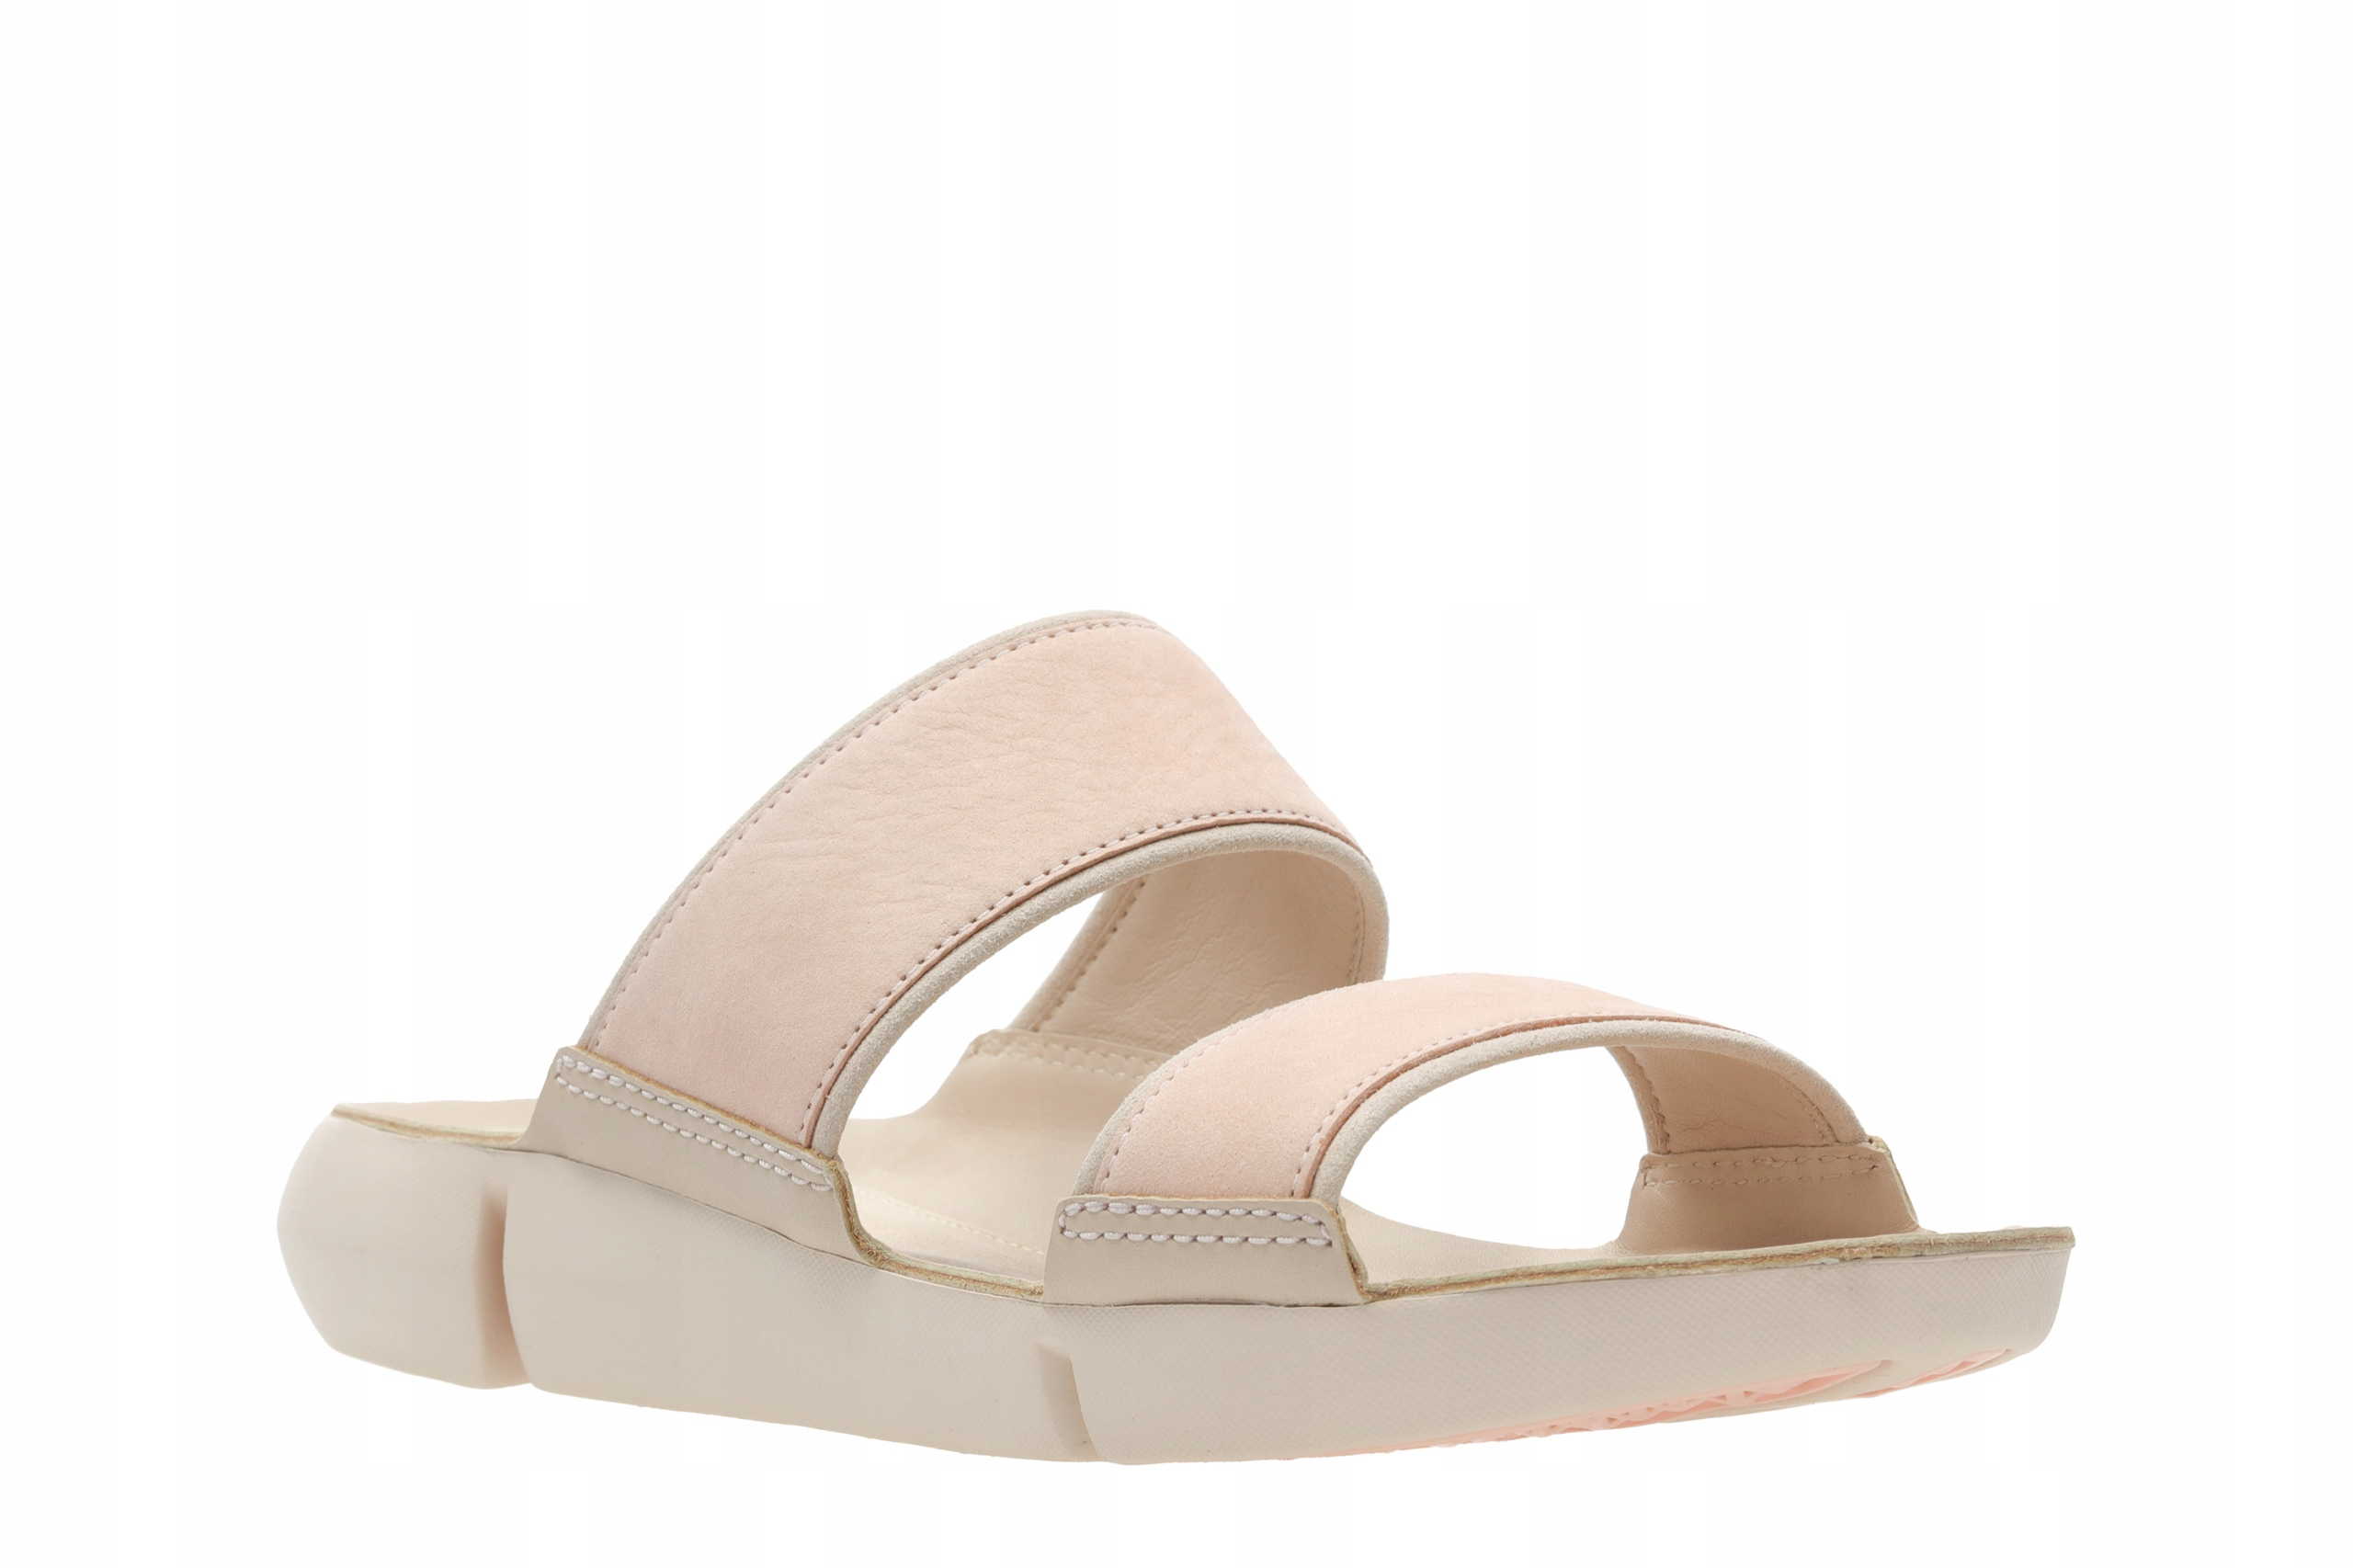 KLAPKI CLARKS TRI SARA BLUSH COMBINATION 39